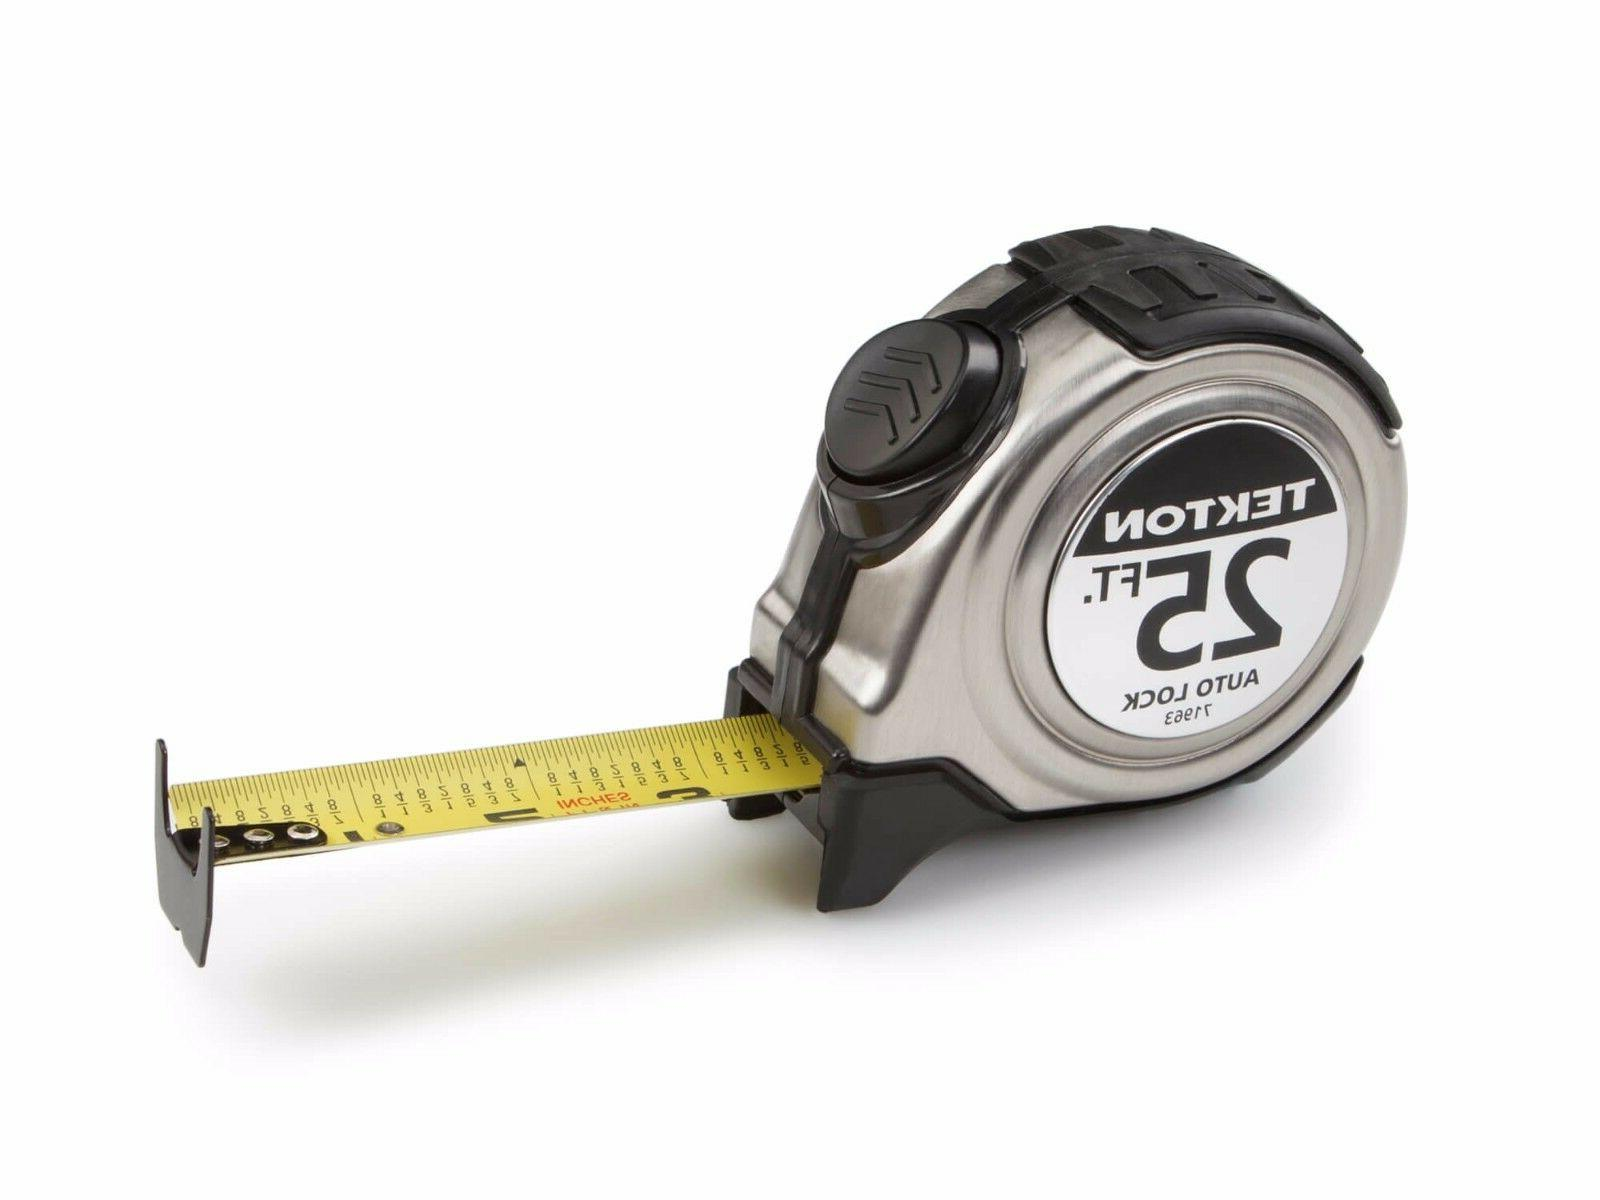 TEKTON 71963 - 25 ft. x 1 in. Auto Lock Tape Measure  FREE S